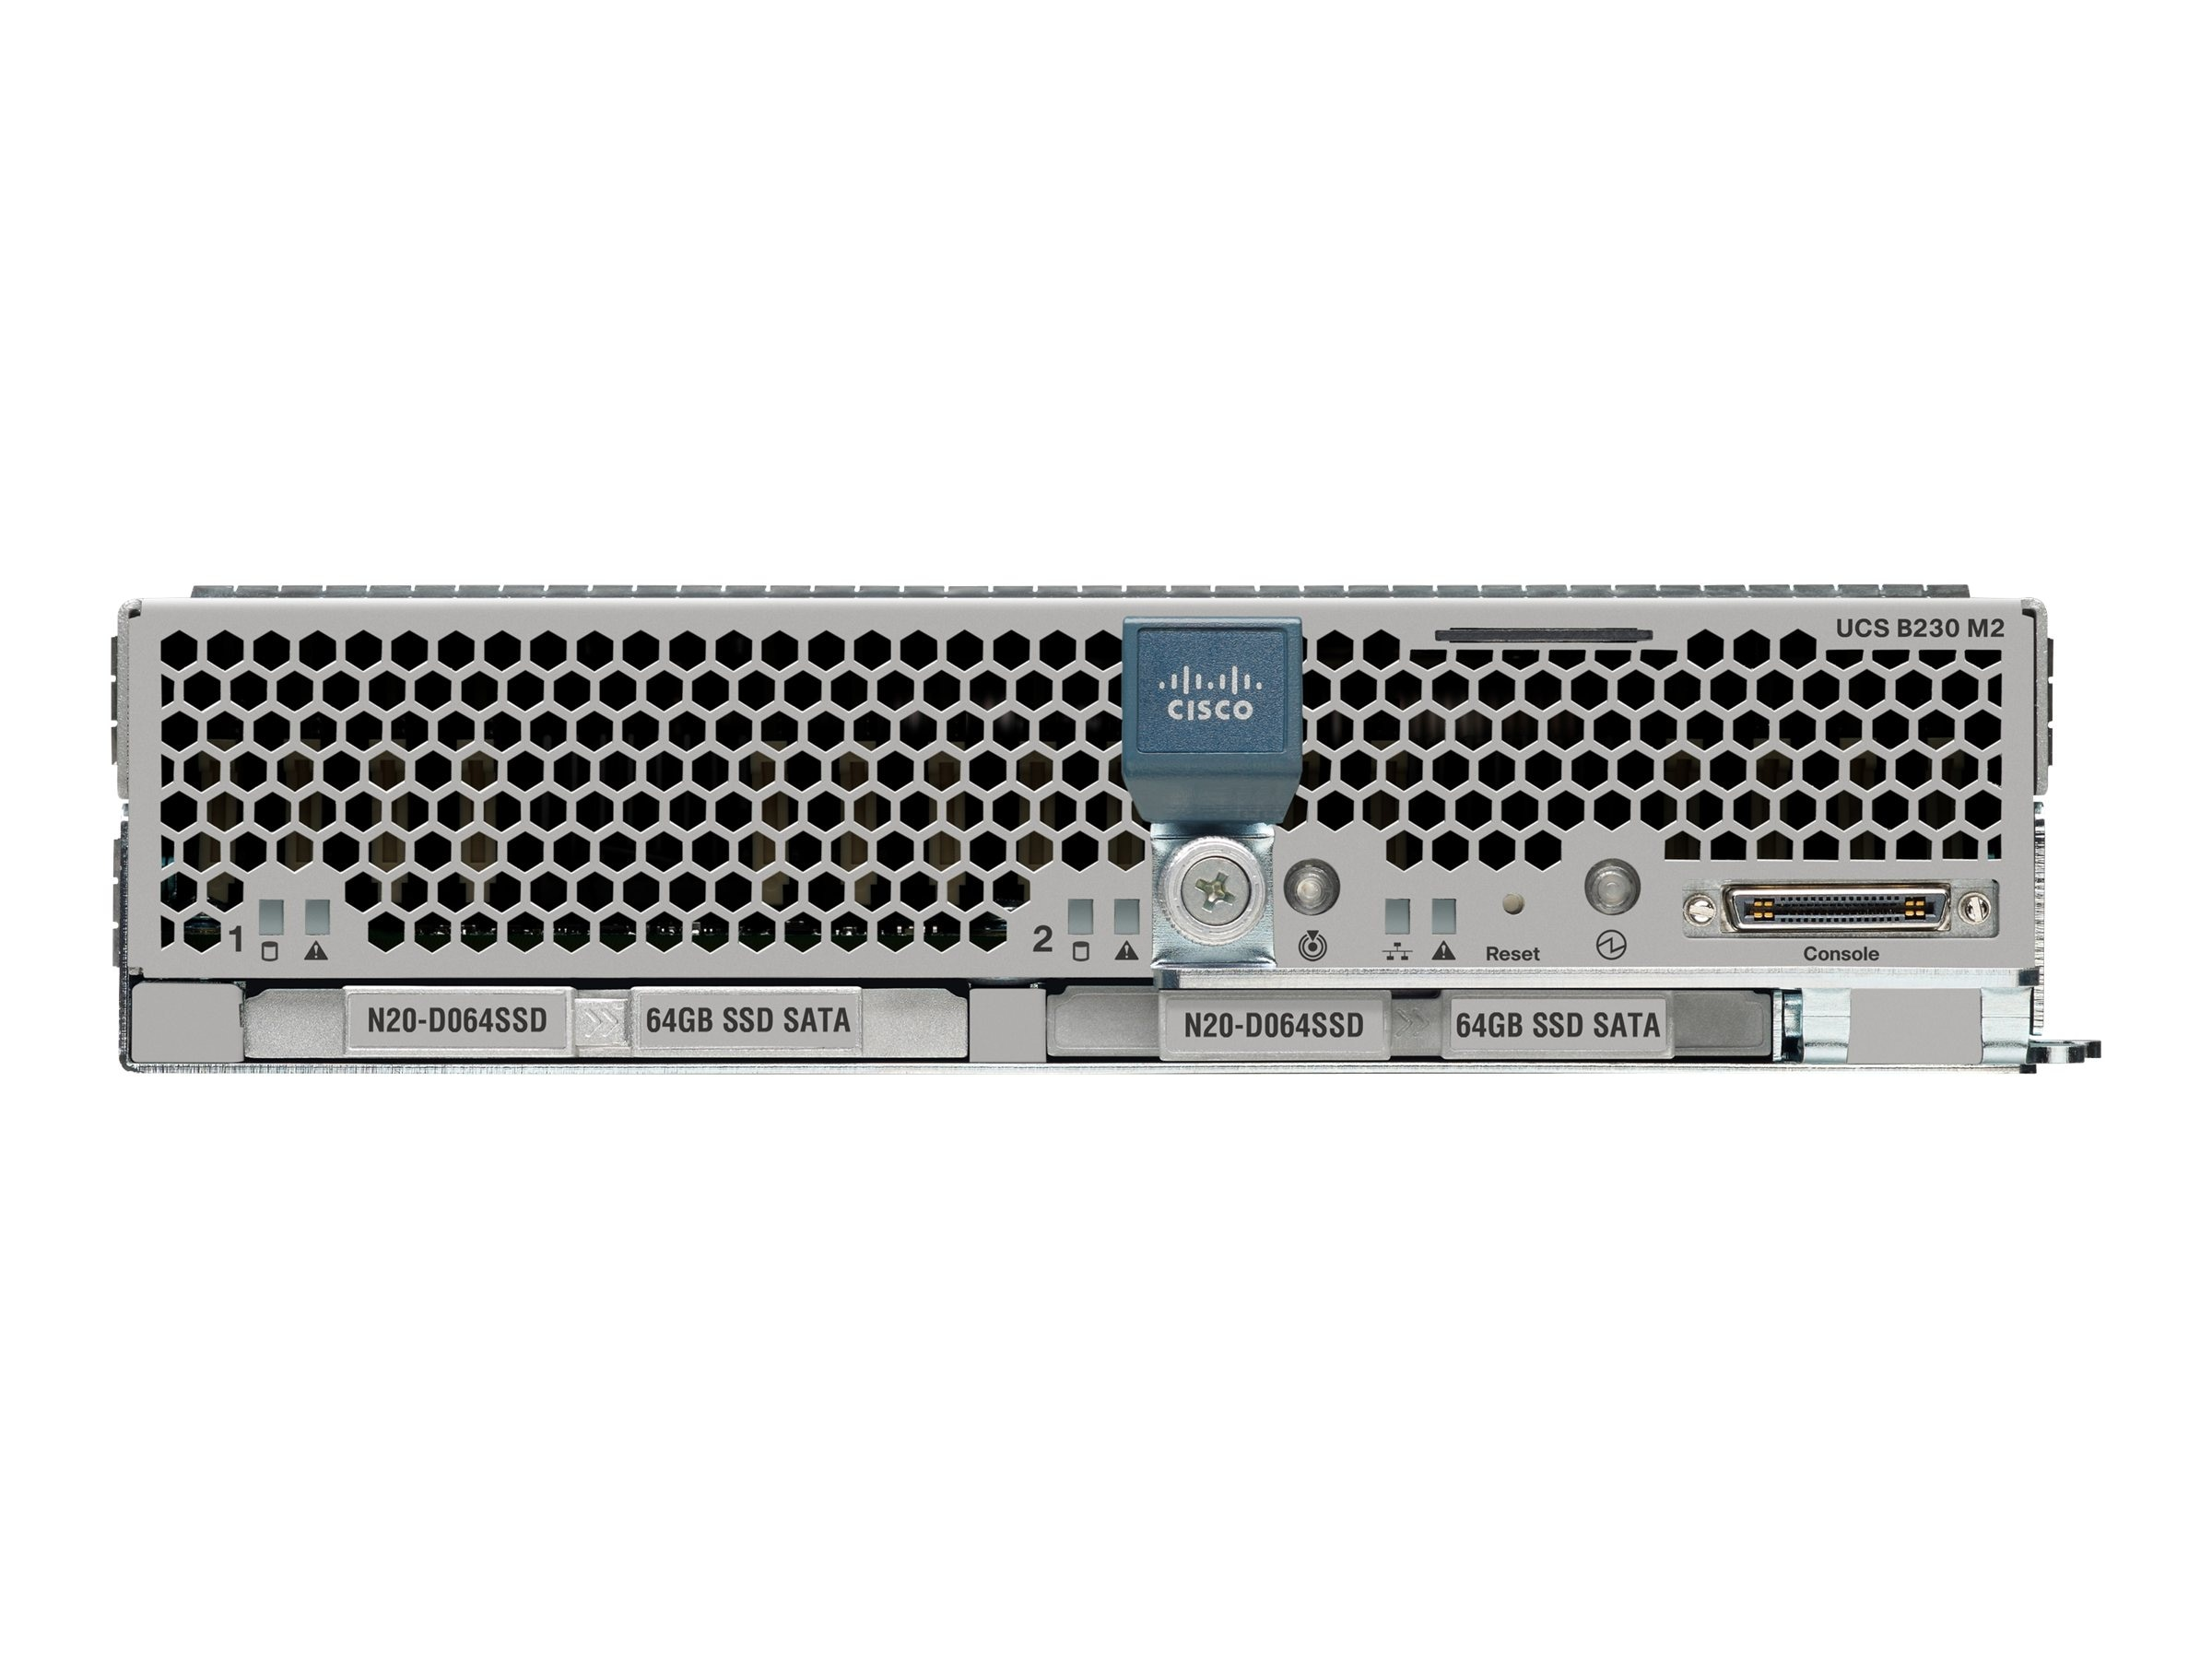 Cisco UCS B230 M2 SmartPlay Expansion Pack Blade (2x) Xeon 10C E7-2860 2.26GHz 128GB VIC1280, UCS-EZ7-B230-EX128, 16761357, Servers - Blade